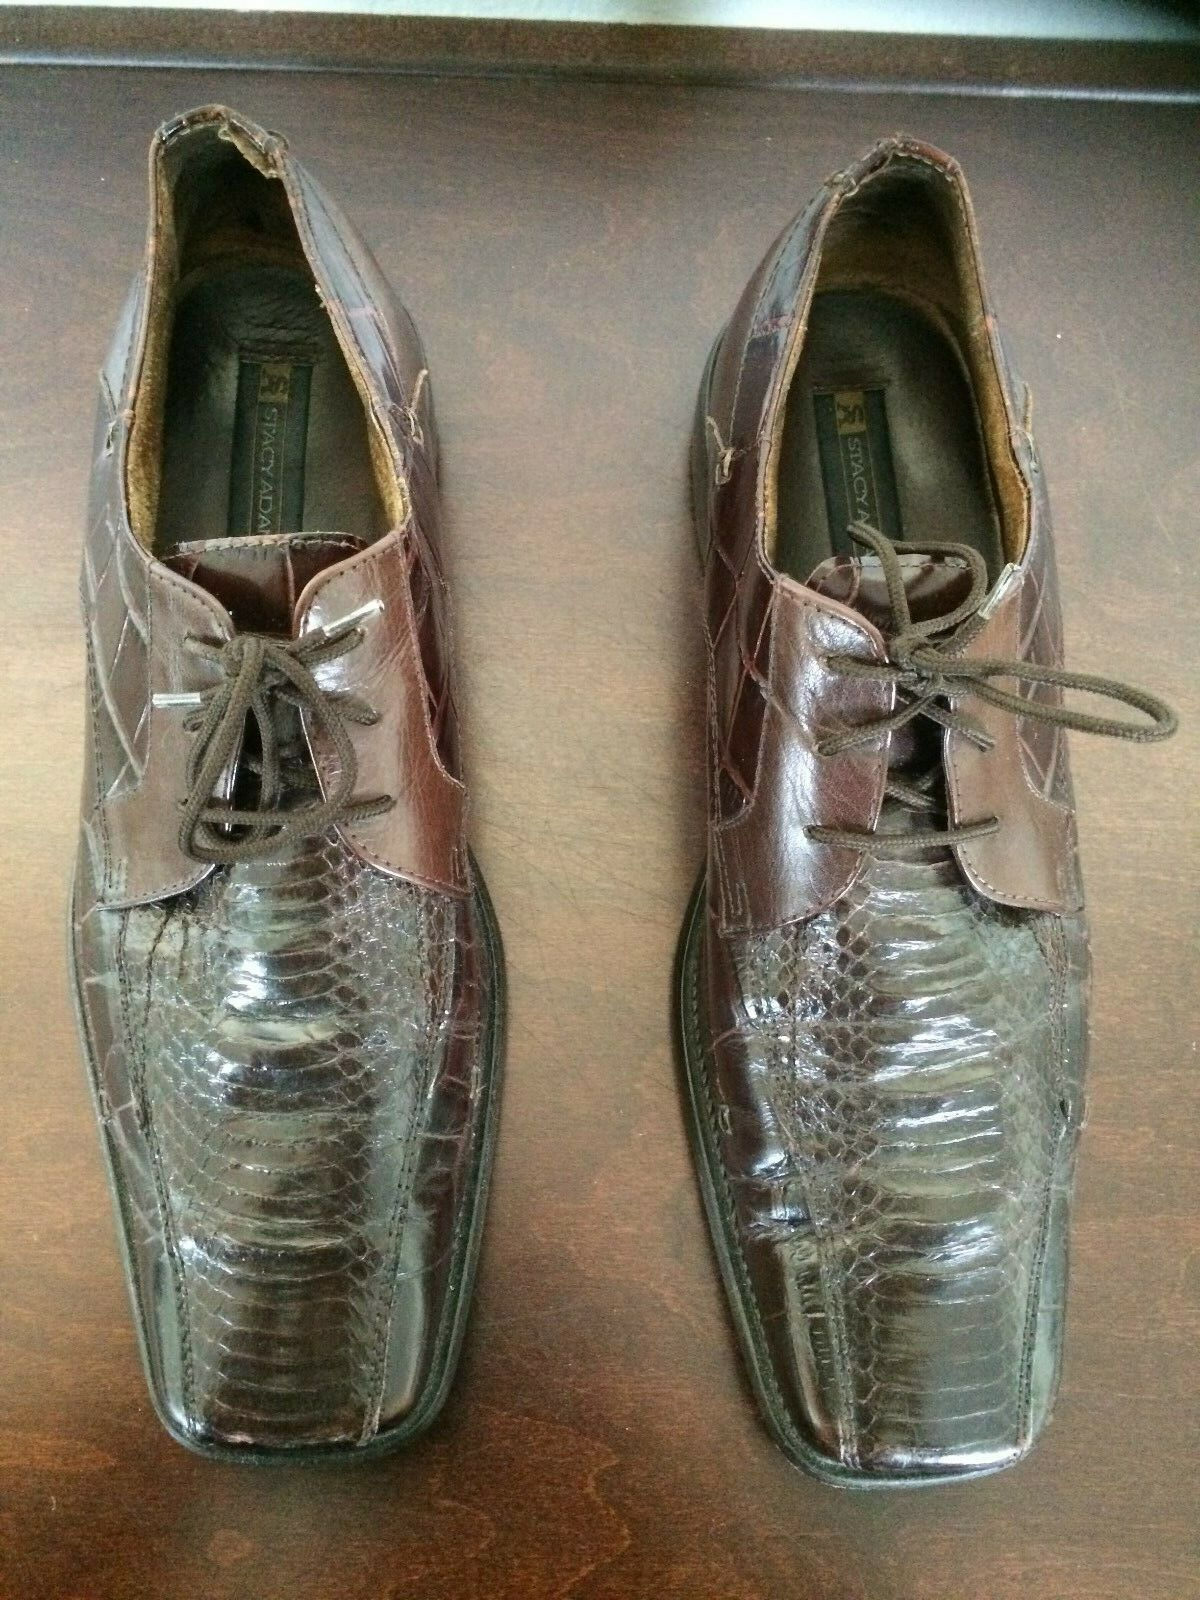 Men's Dress shoes by Stacy Adams